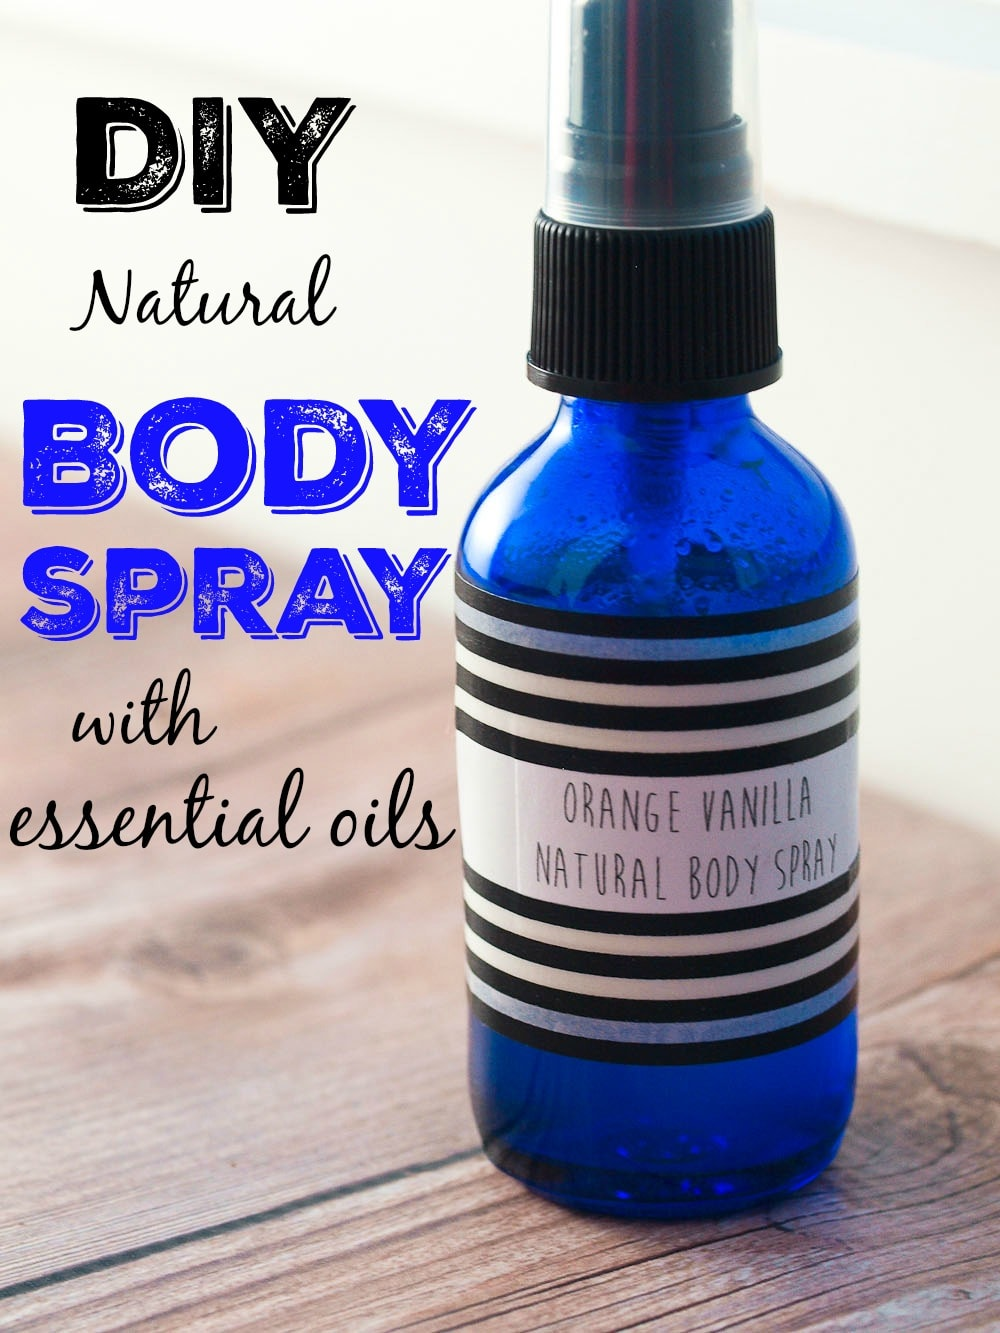 DIY Body Spray with essential oils--Two recipes including this one for Orange Vanilla